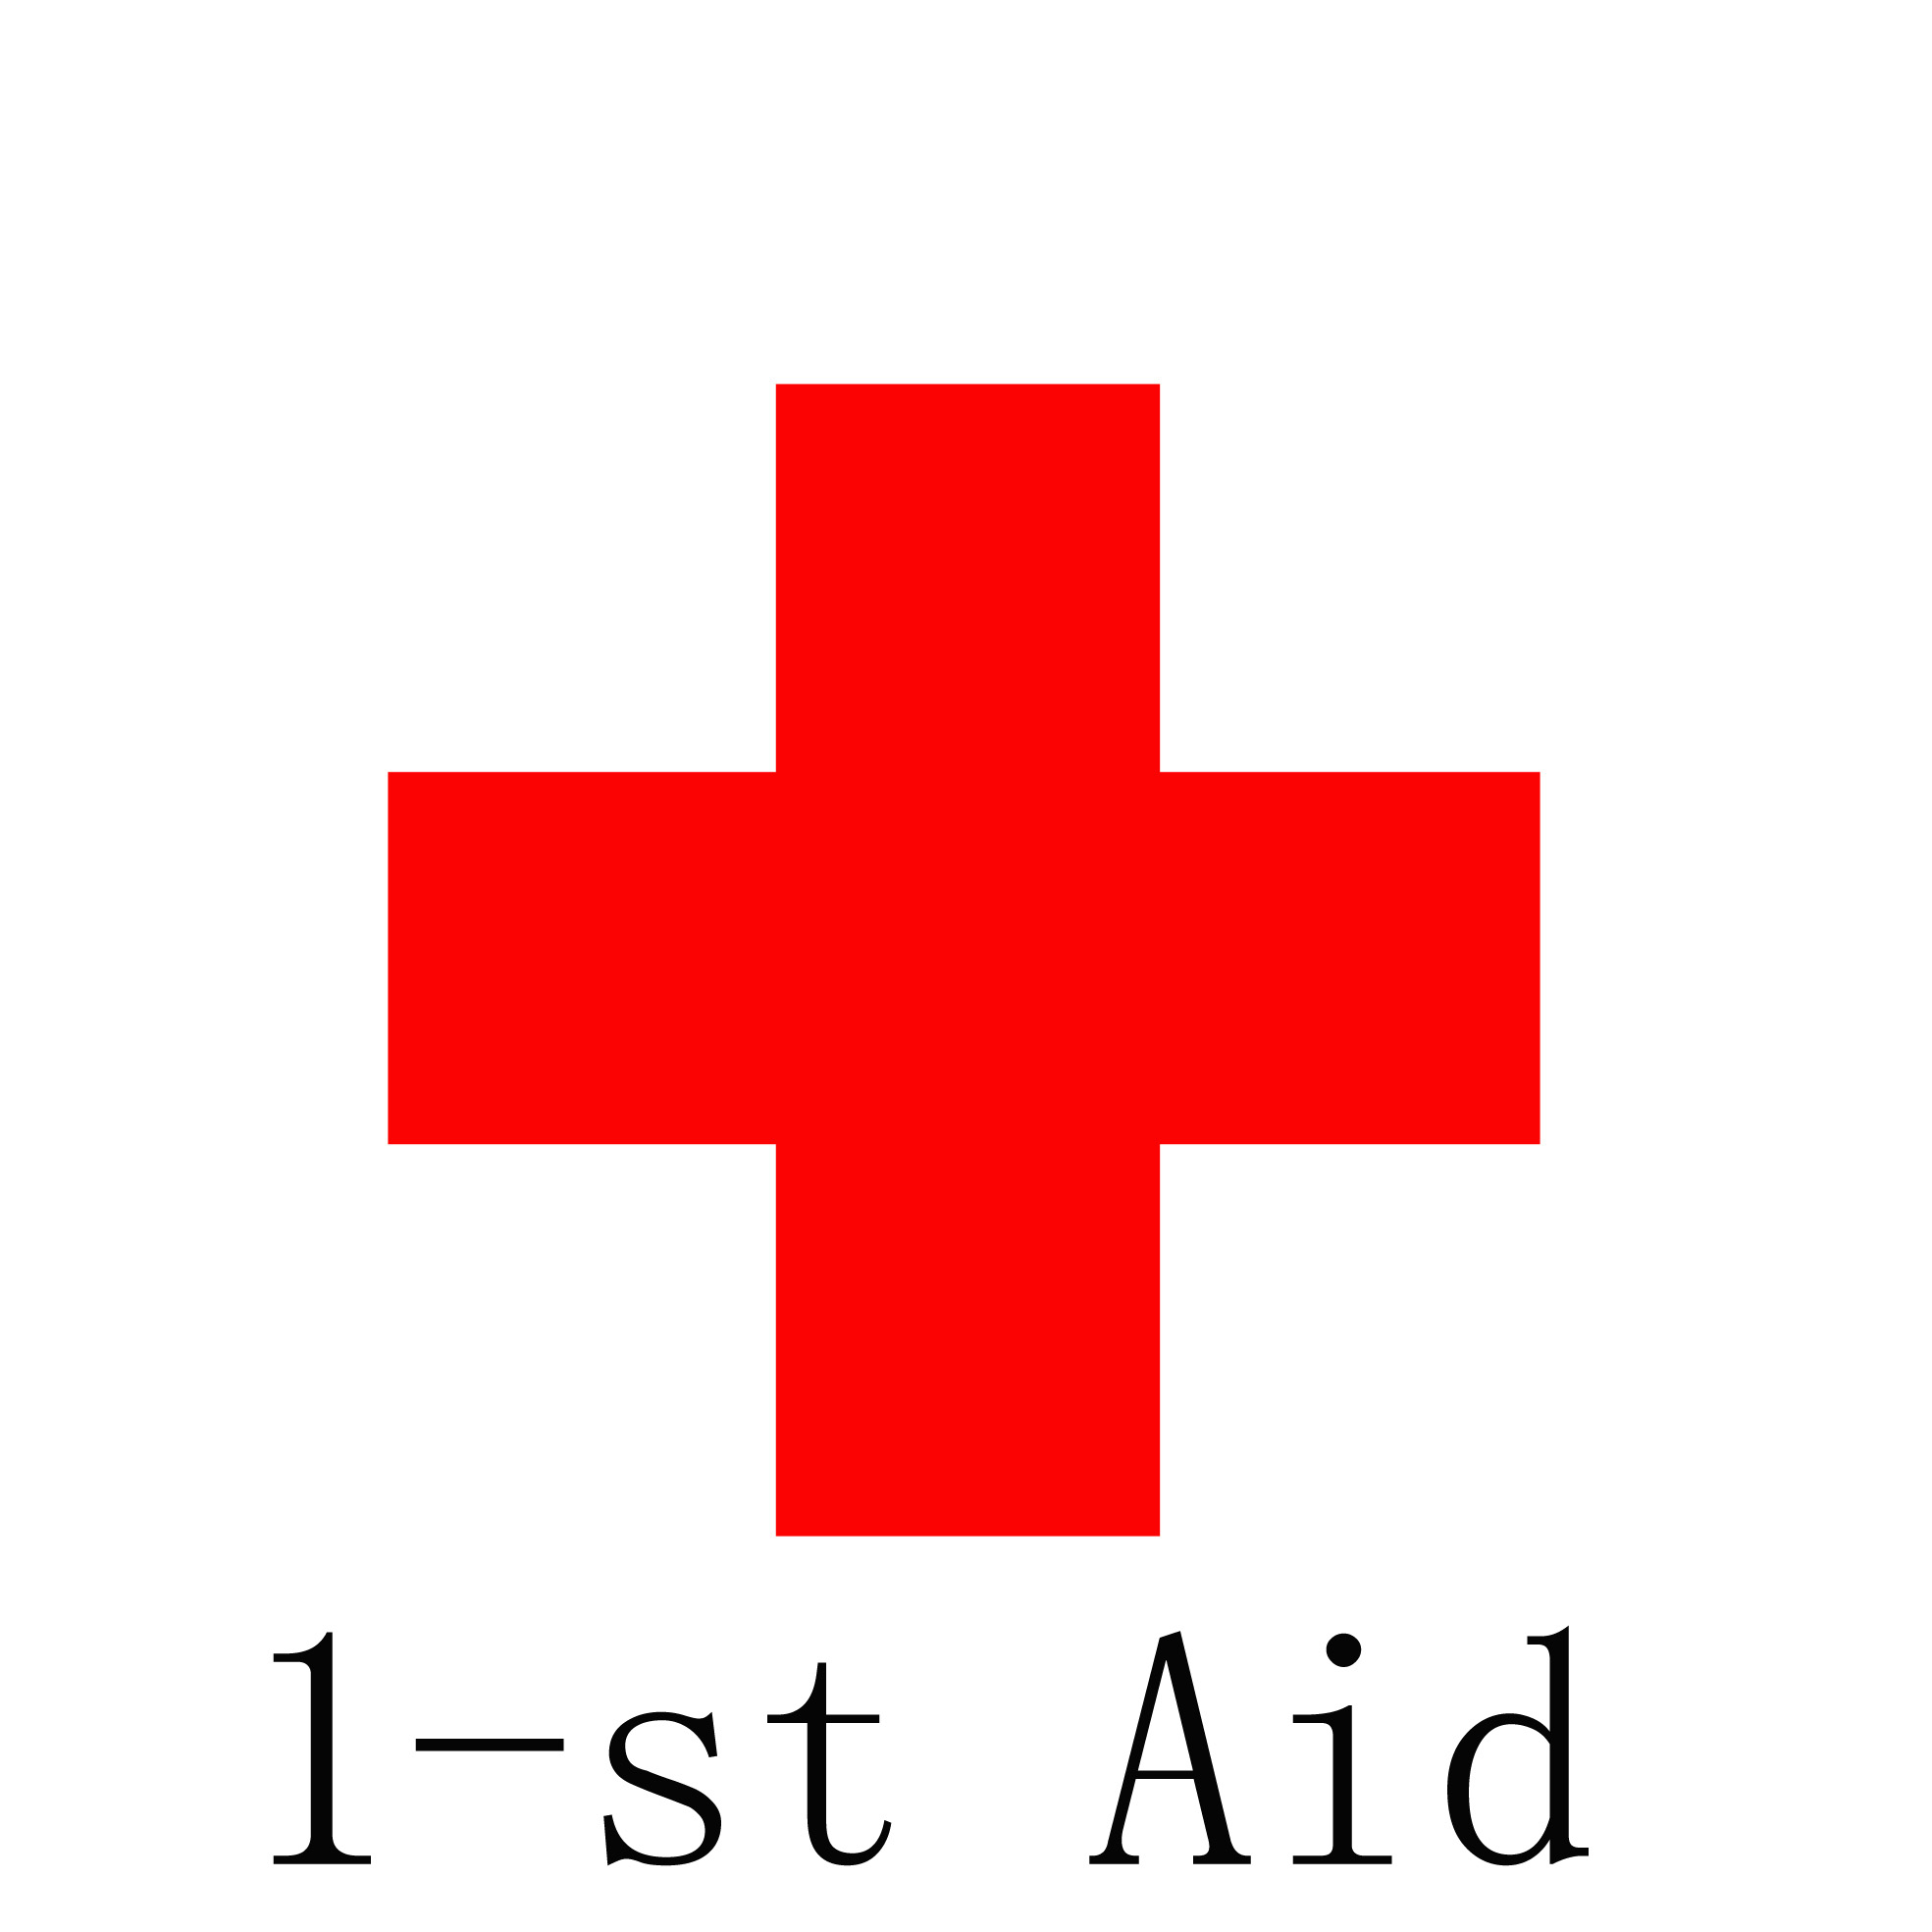 first aid logo design - photo #31